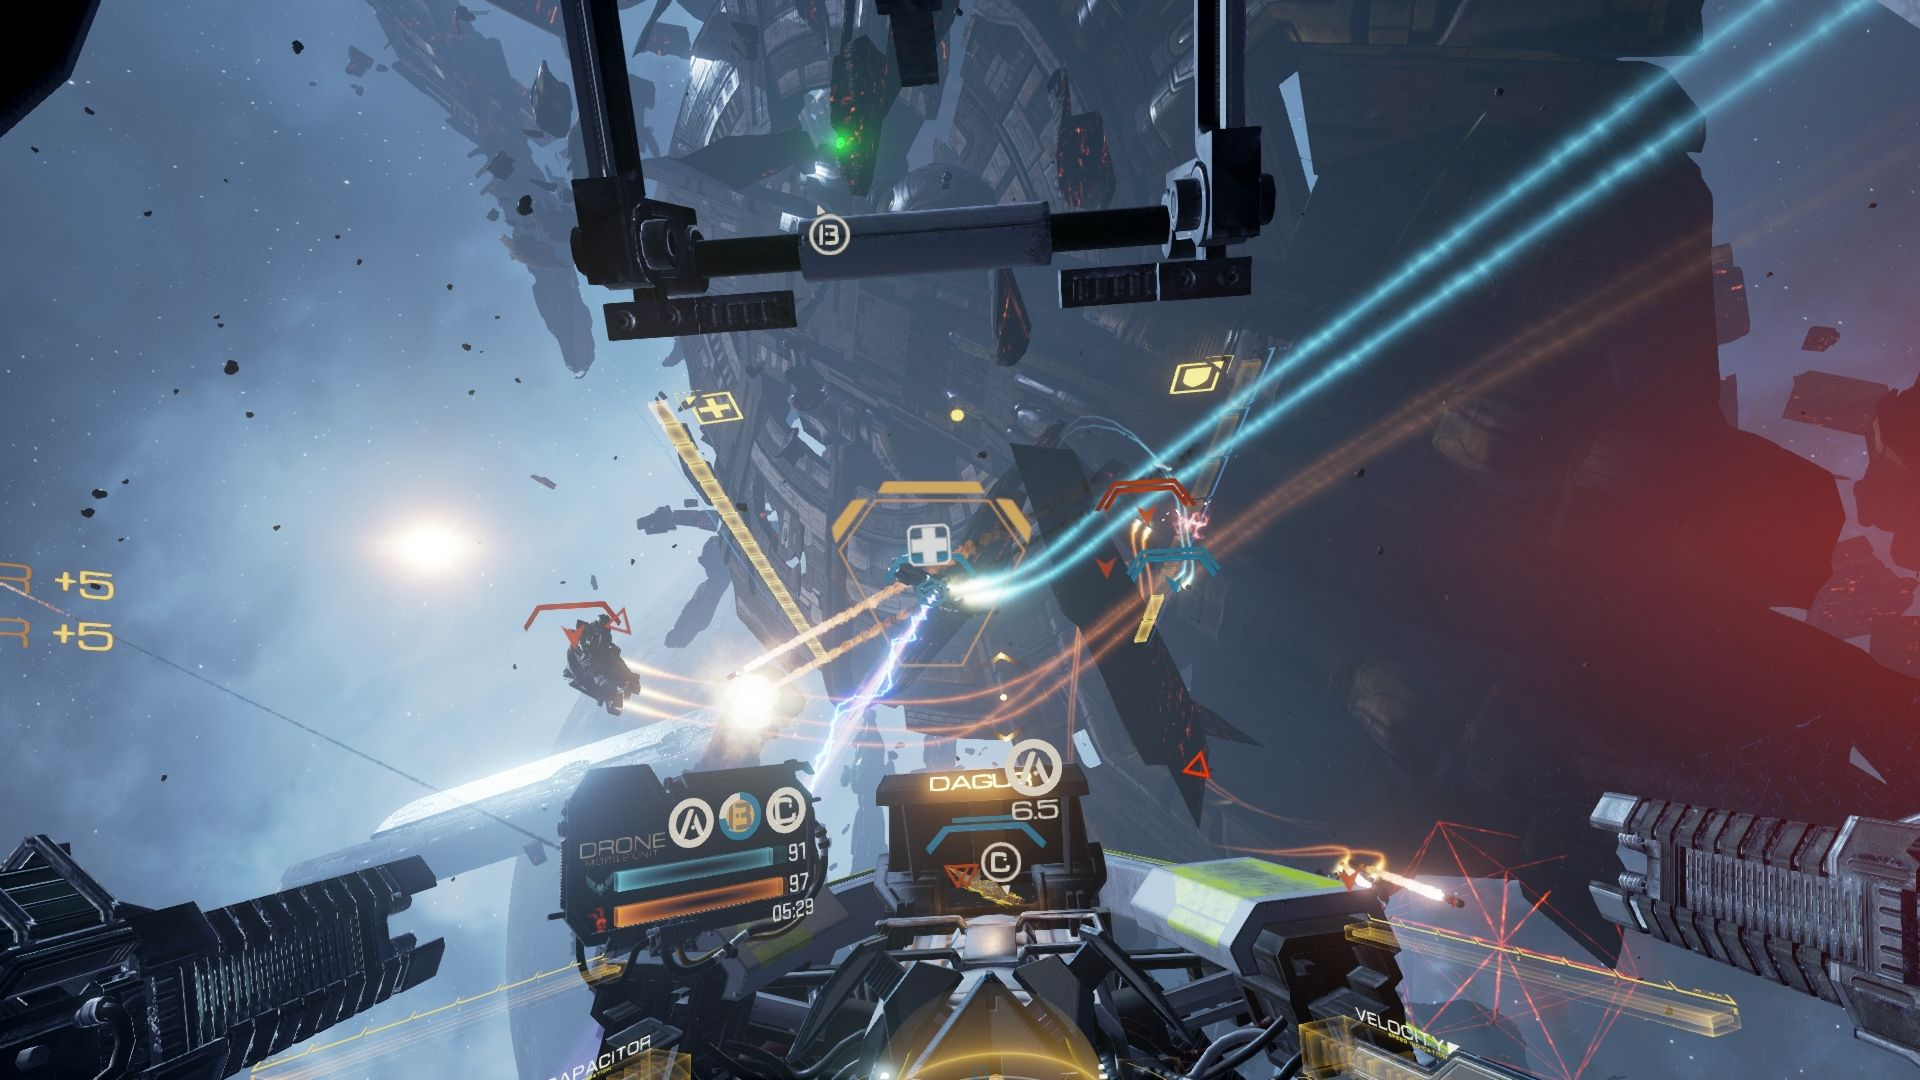 EVE: Valkyrie comes to HTC Vive this month | Virtual Reality